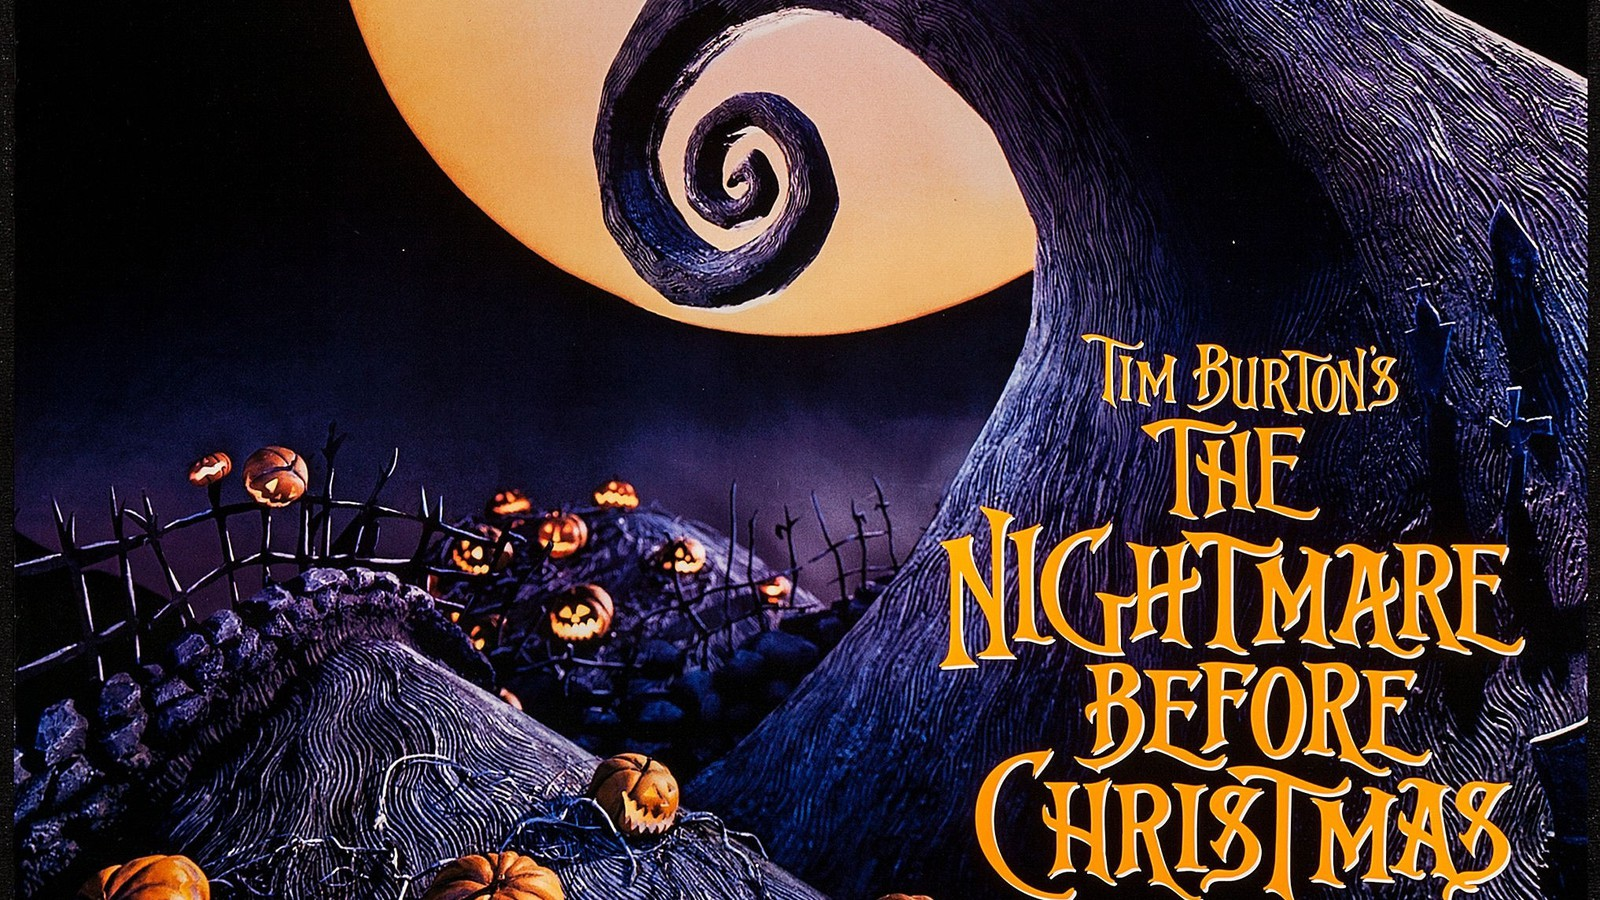 The nightmare before christmas movie posters wallpaper ...